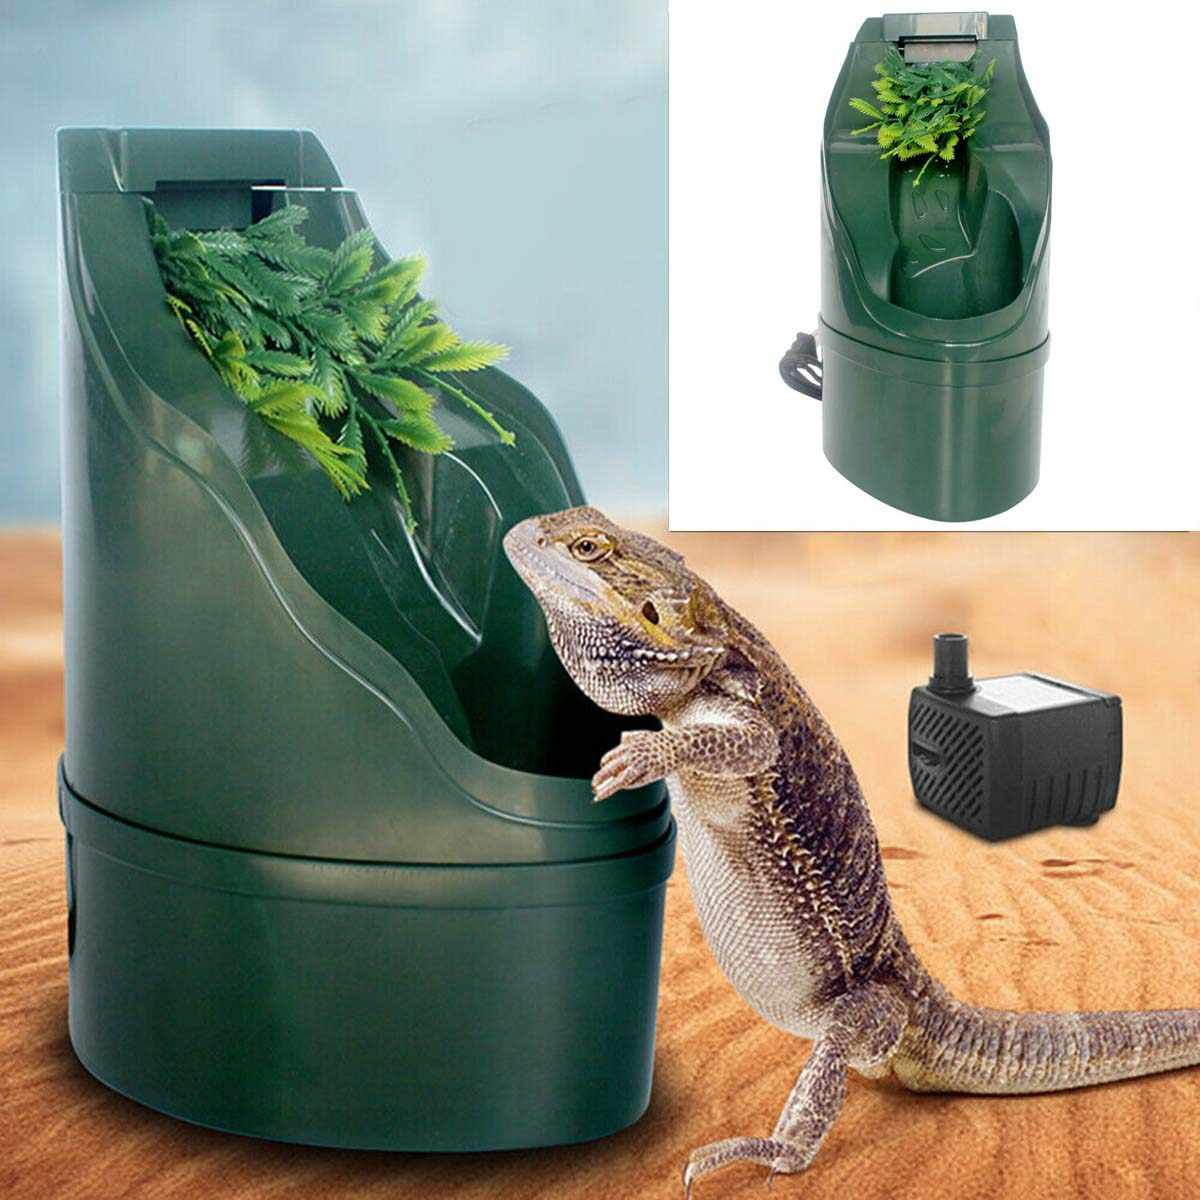 180*125mm ABS Automatic Reptile Water Drinking Filter Feeding Drinkers Tools Drinking Water Fountain Lizard Chameleon Amphibian